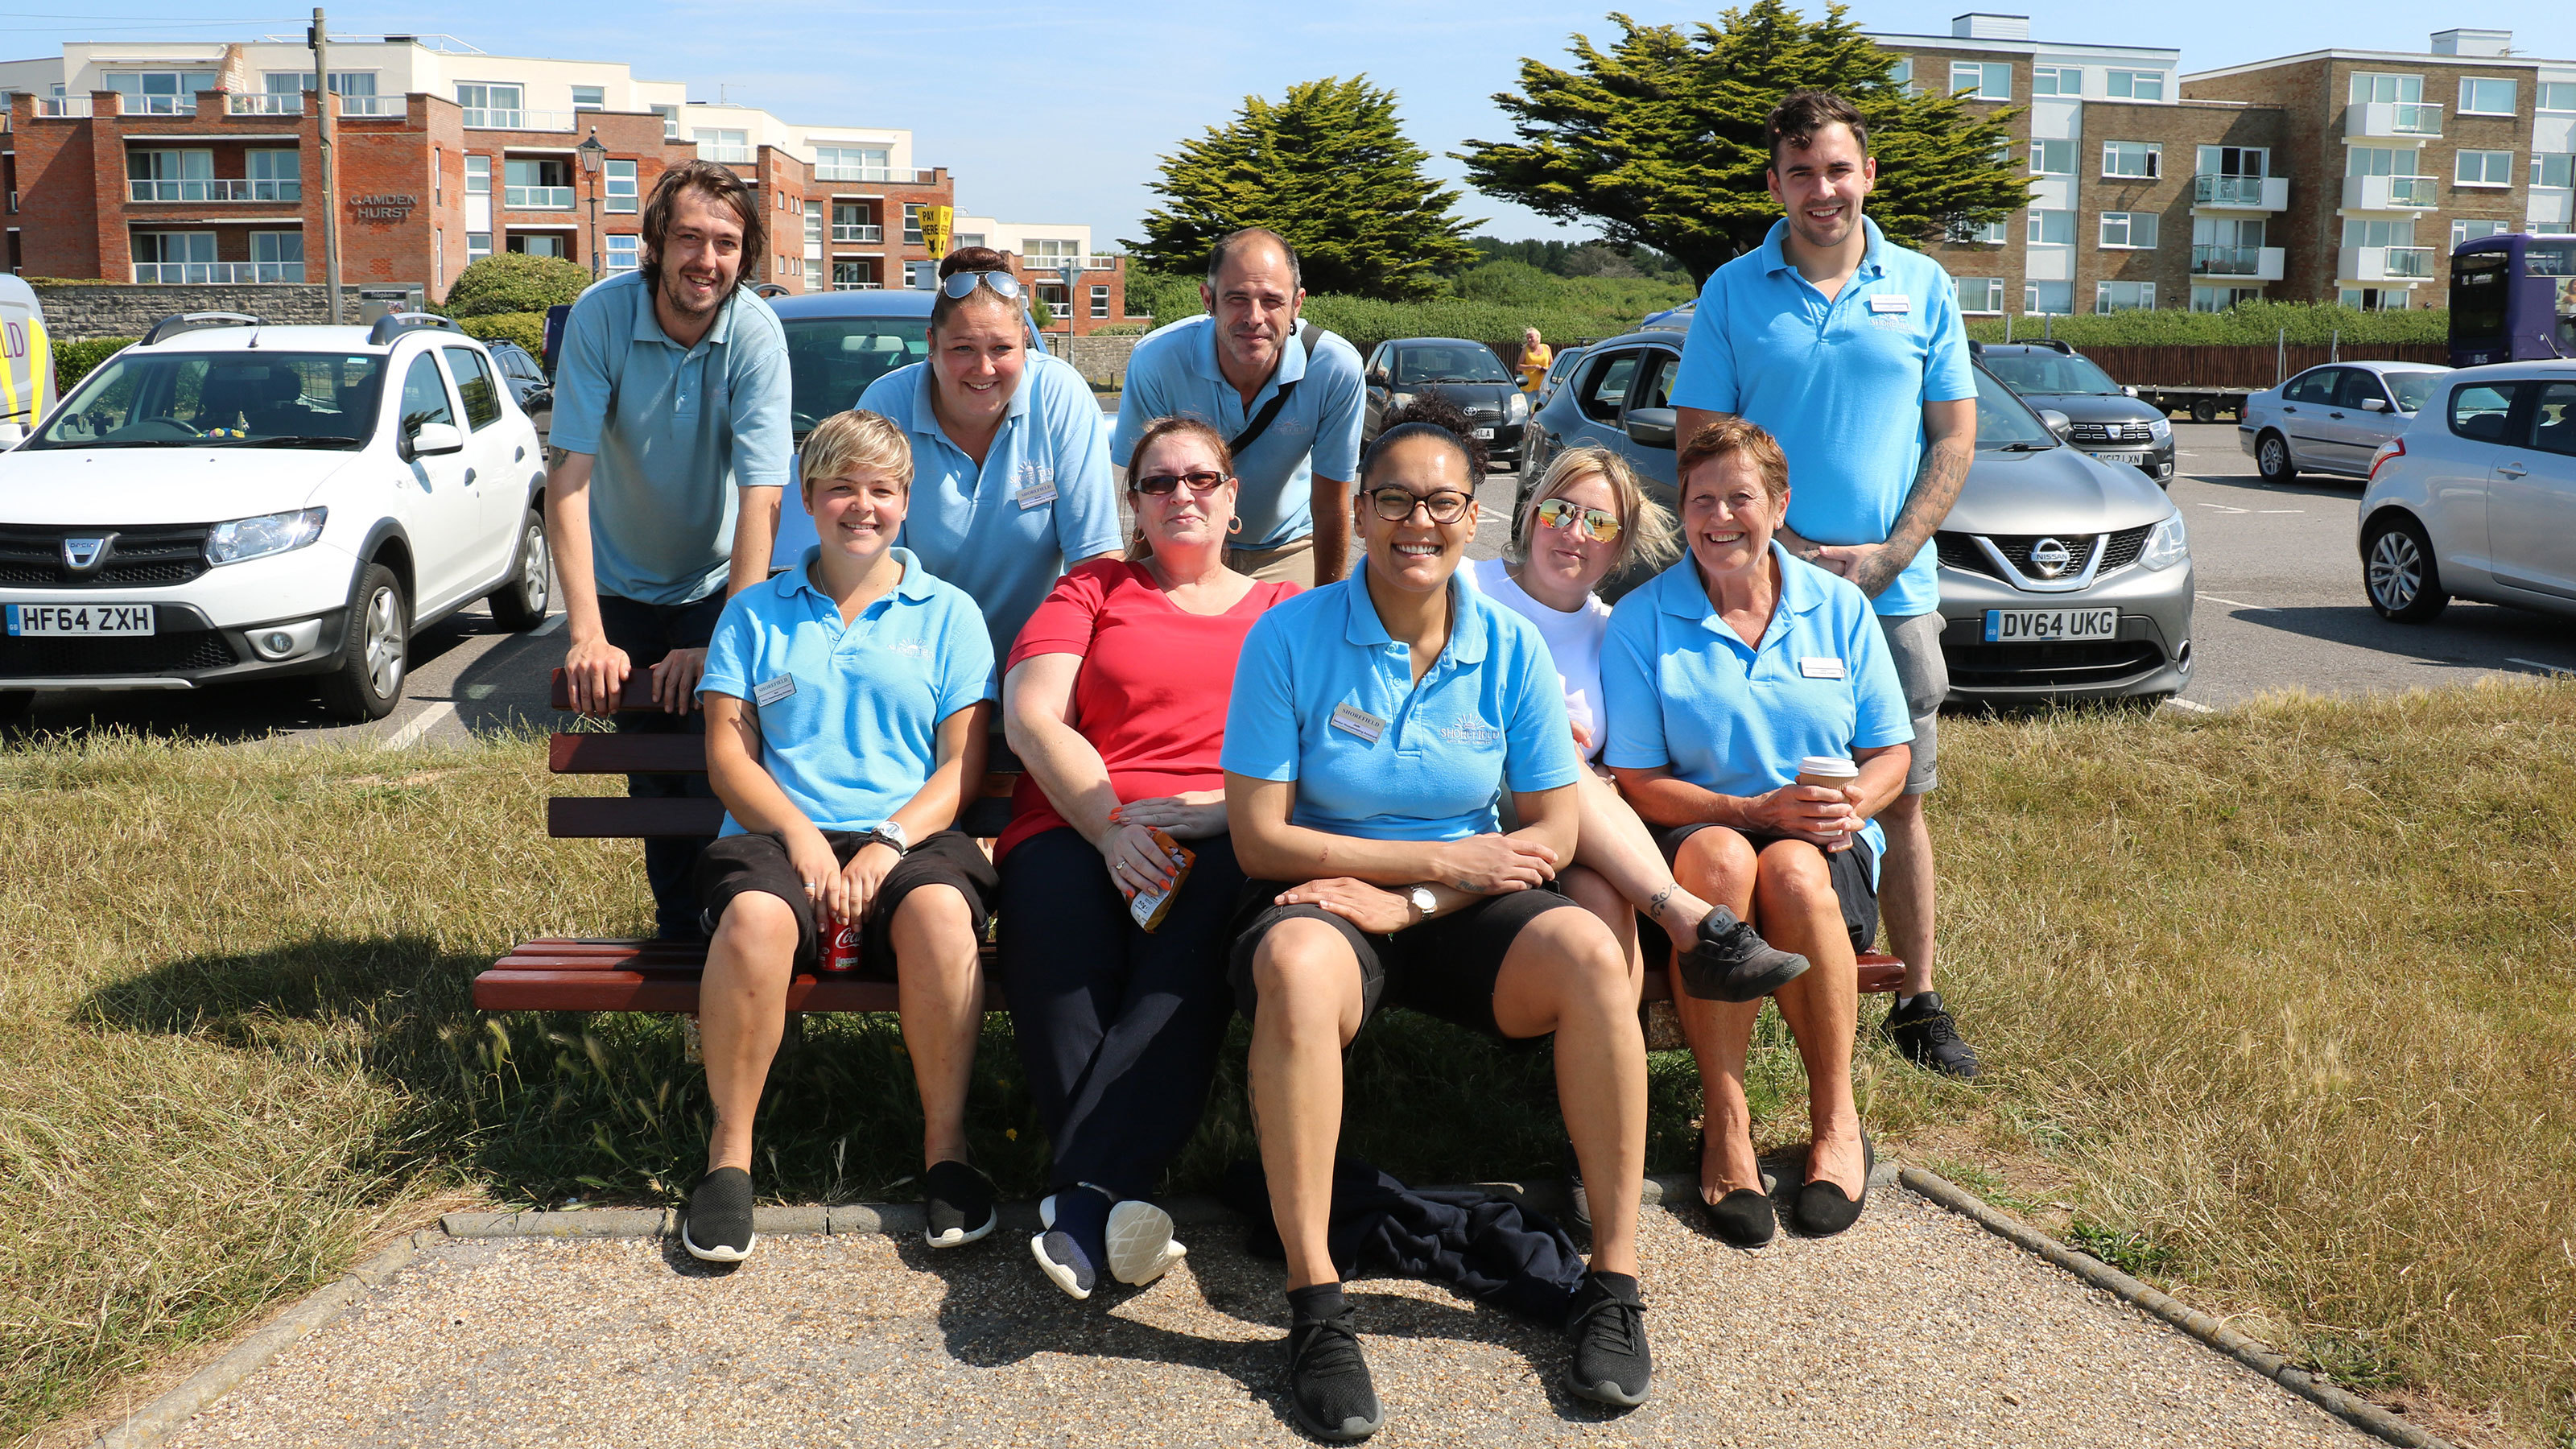 The-Housekeeping-Team-from-Oakdene-Forest-Park-joined-the-Shorefield-Beach-Clean